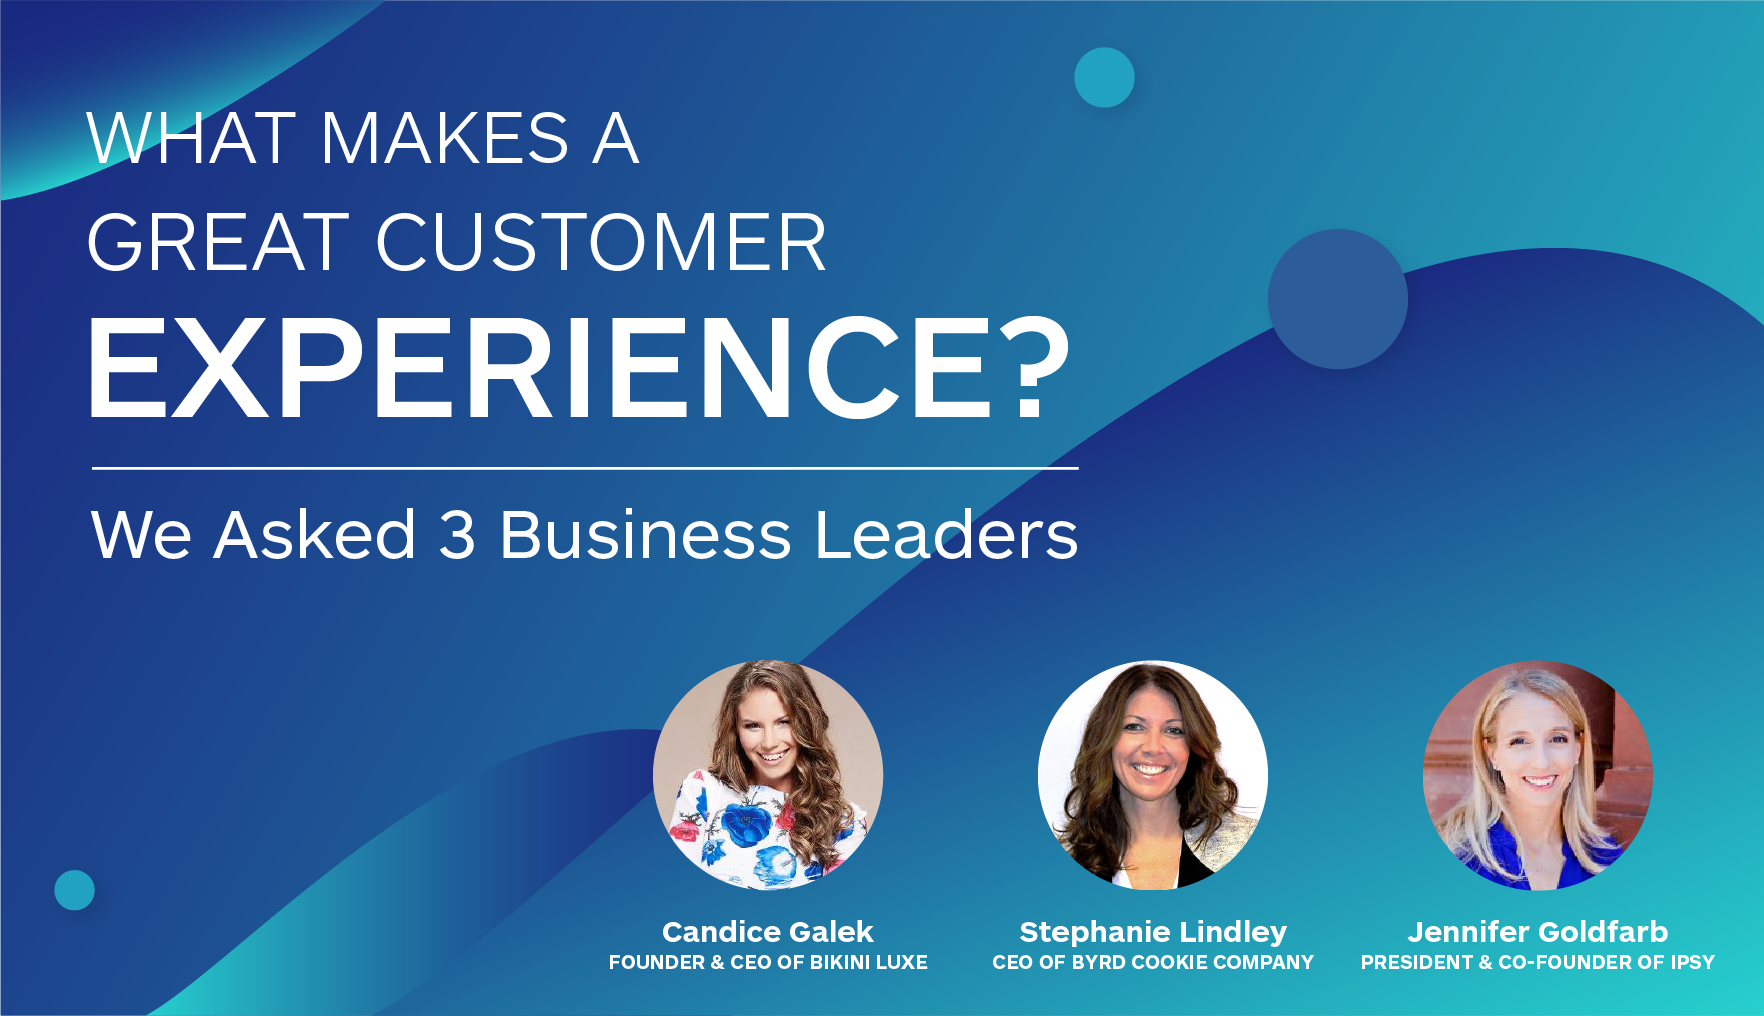 What Makes a Great Customer Experience? We asked 3 business leaders